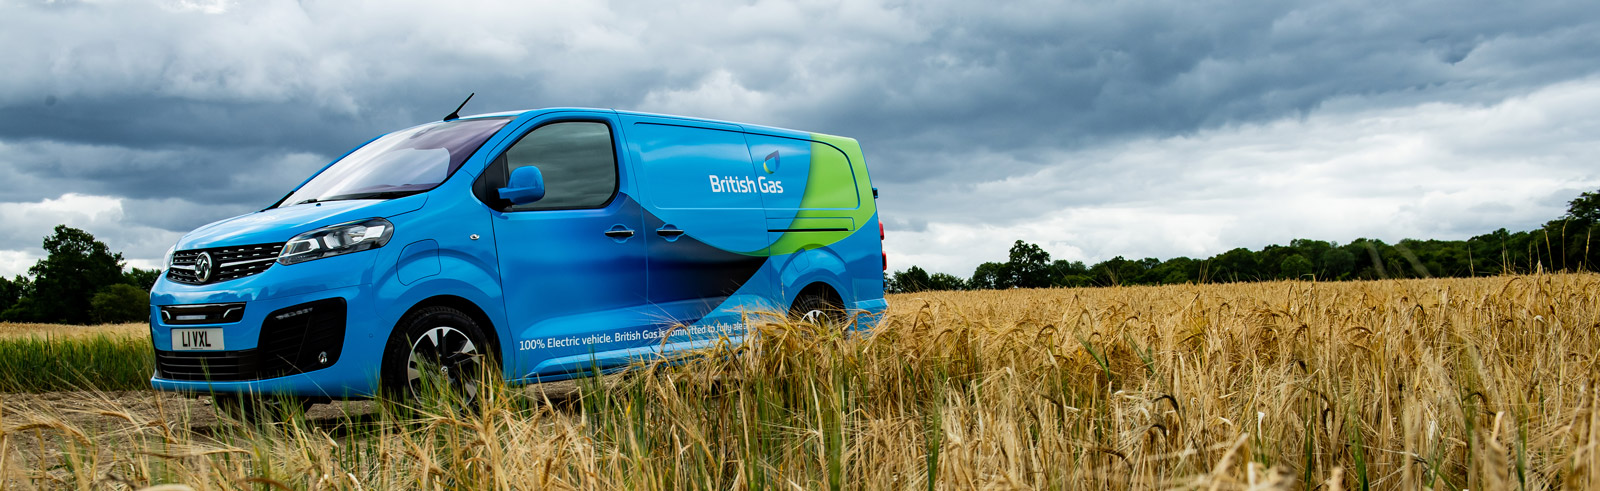 British Gas makes the largest UK commercial EV order with Vauxhall / Opel